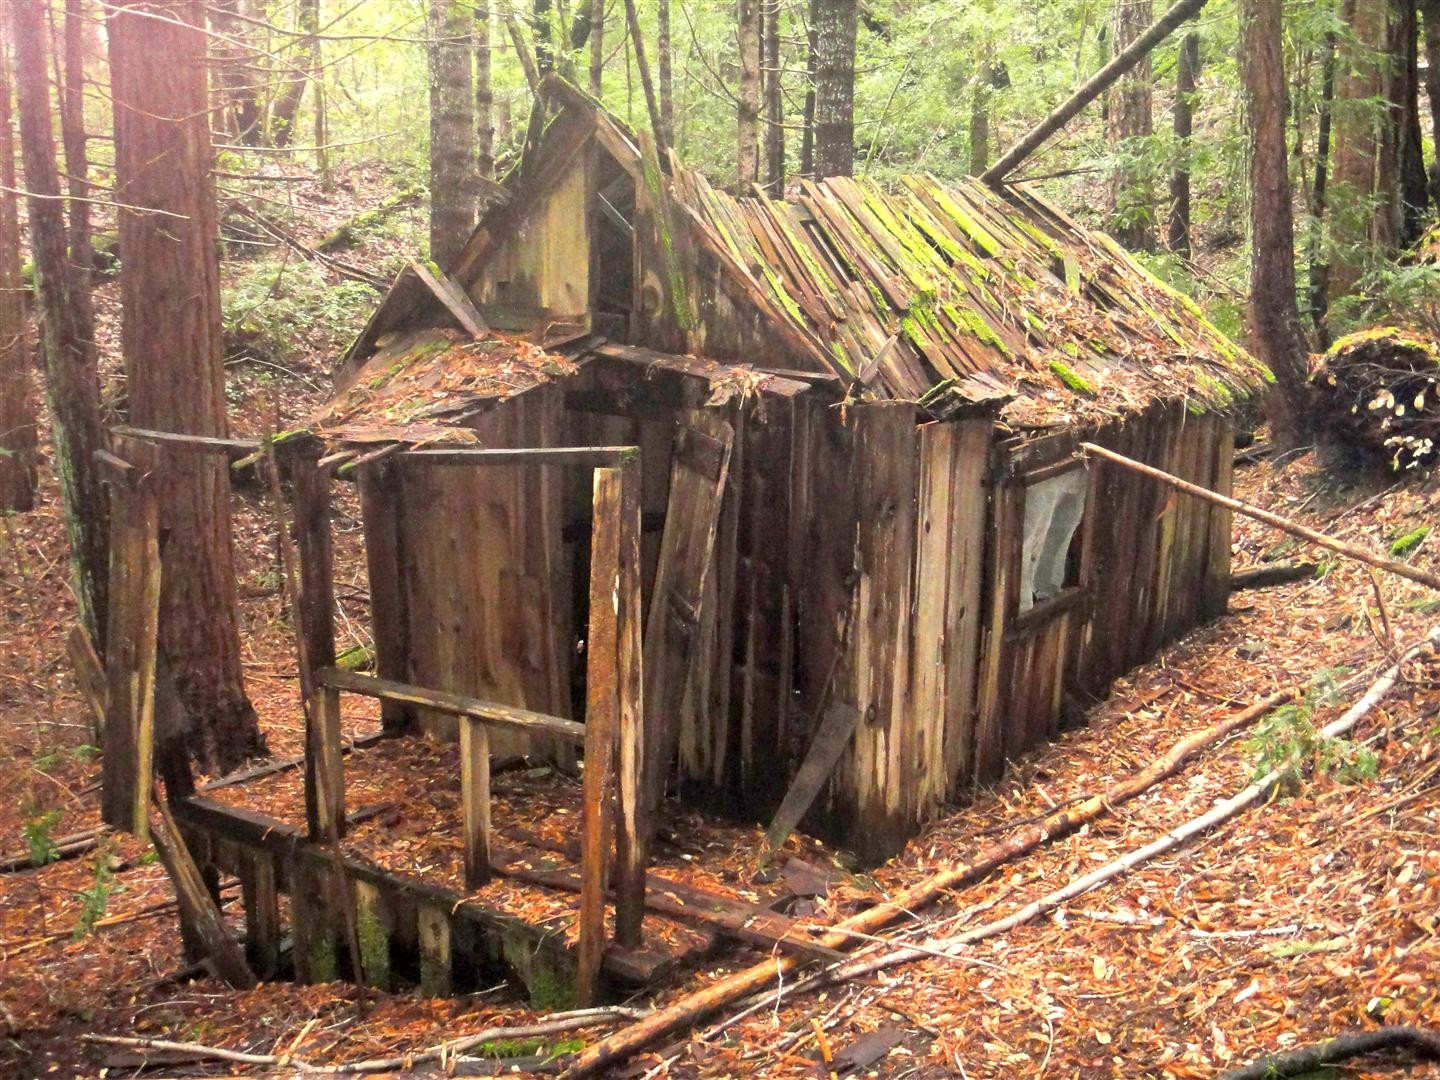 Remains of cabin at Johnson Camp - PHOTO BY BARRY EVANS